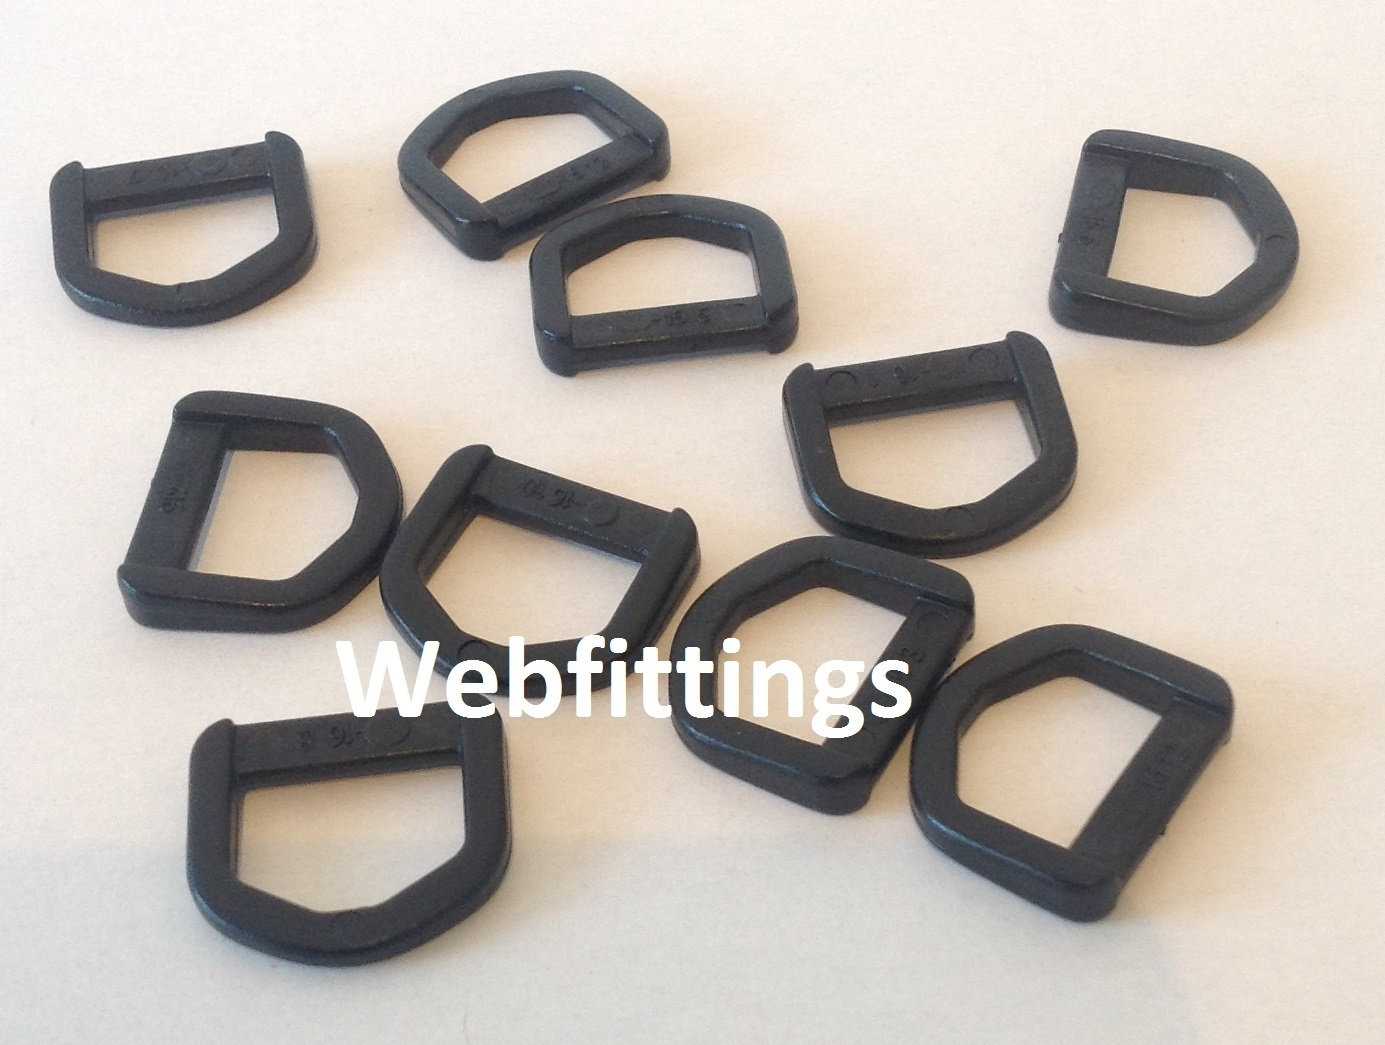 xfitrings x black equipment rings for training xte gymnastic plastic